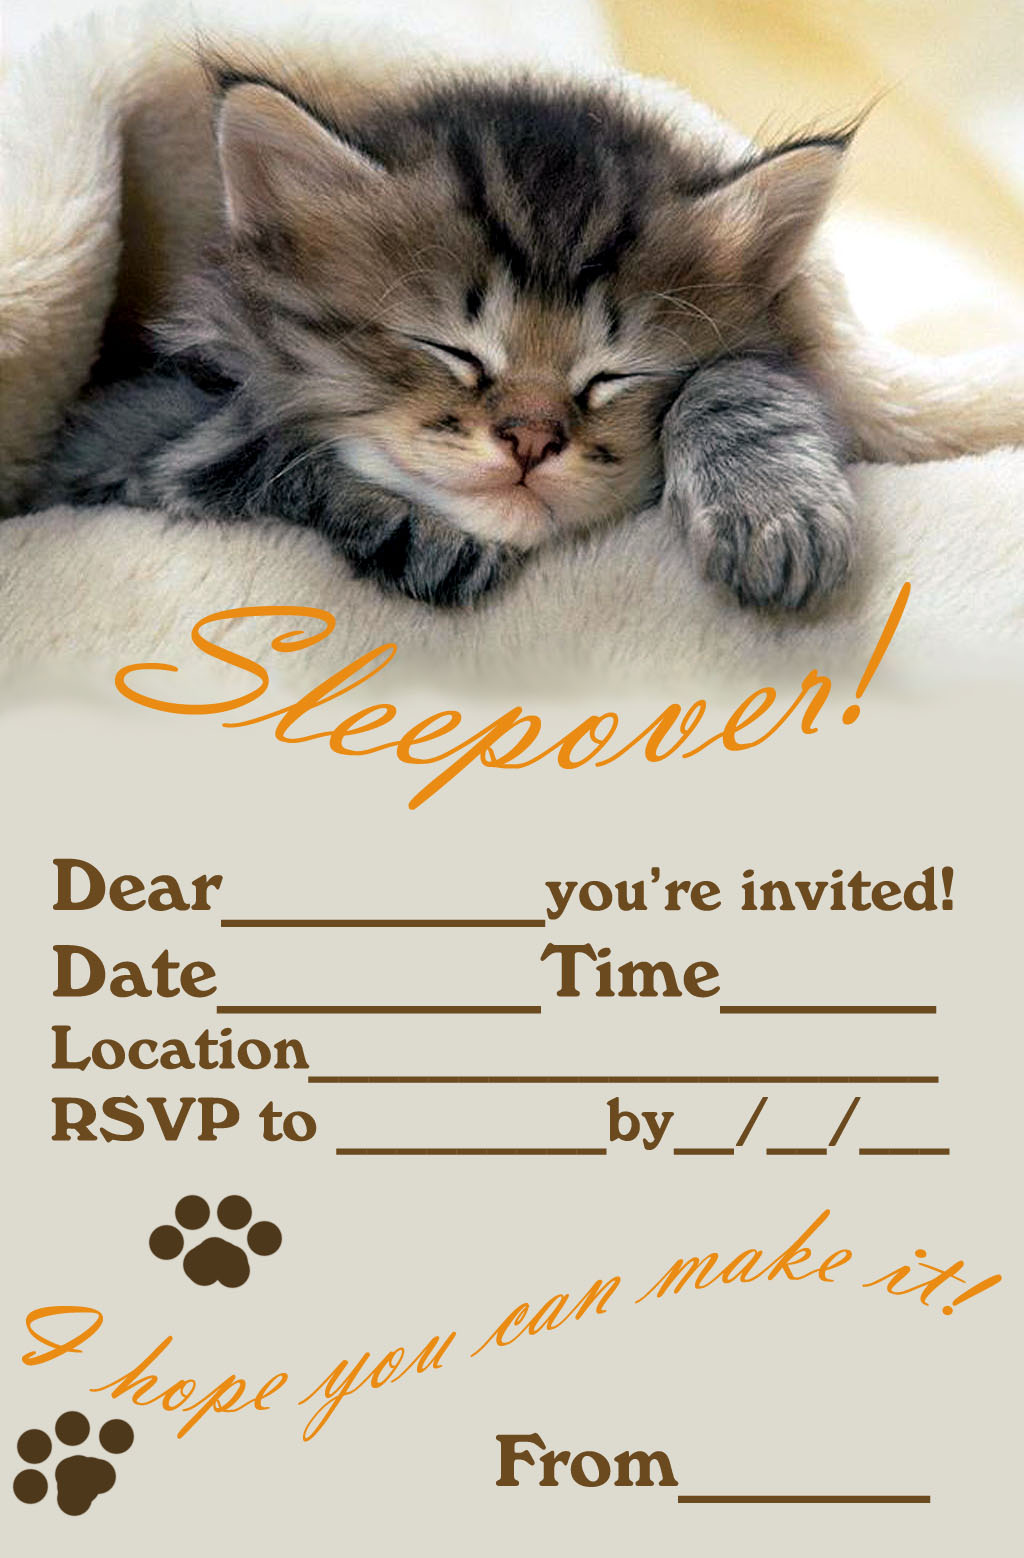 50 Beautiful Slumber Party Invitations | Kitty Baby Love